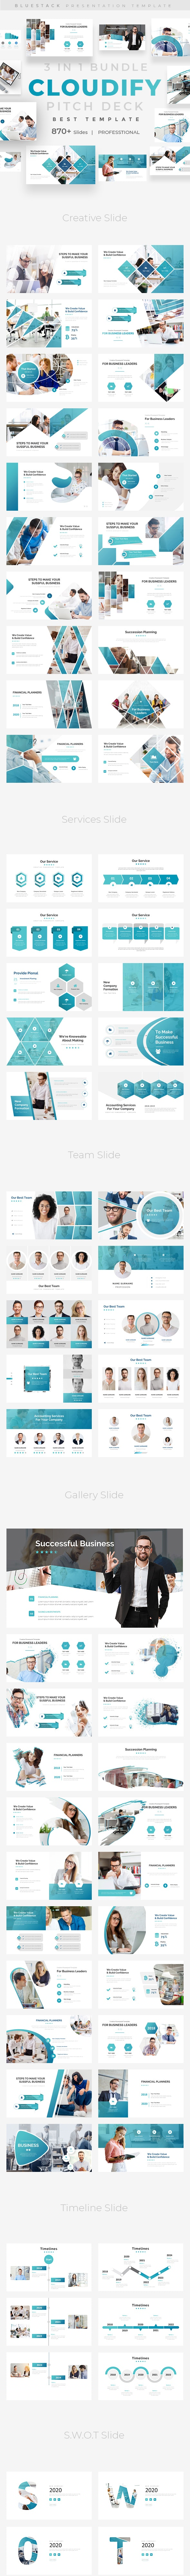 Cloudify Pitch Deck 3 in 1 Bundle Powerpoint Template - Business PowerPoint Templates